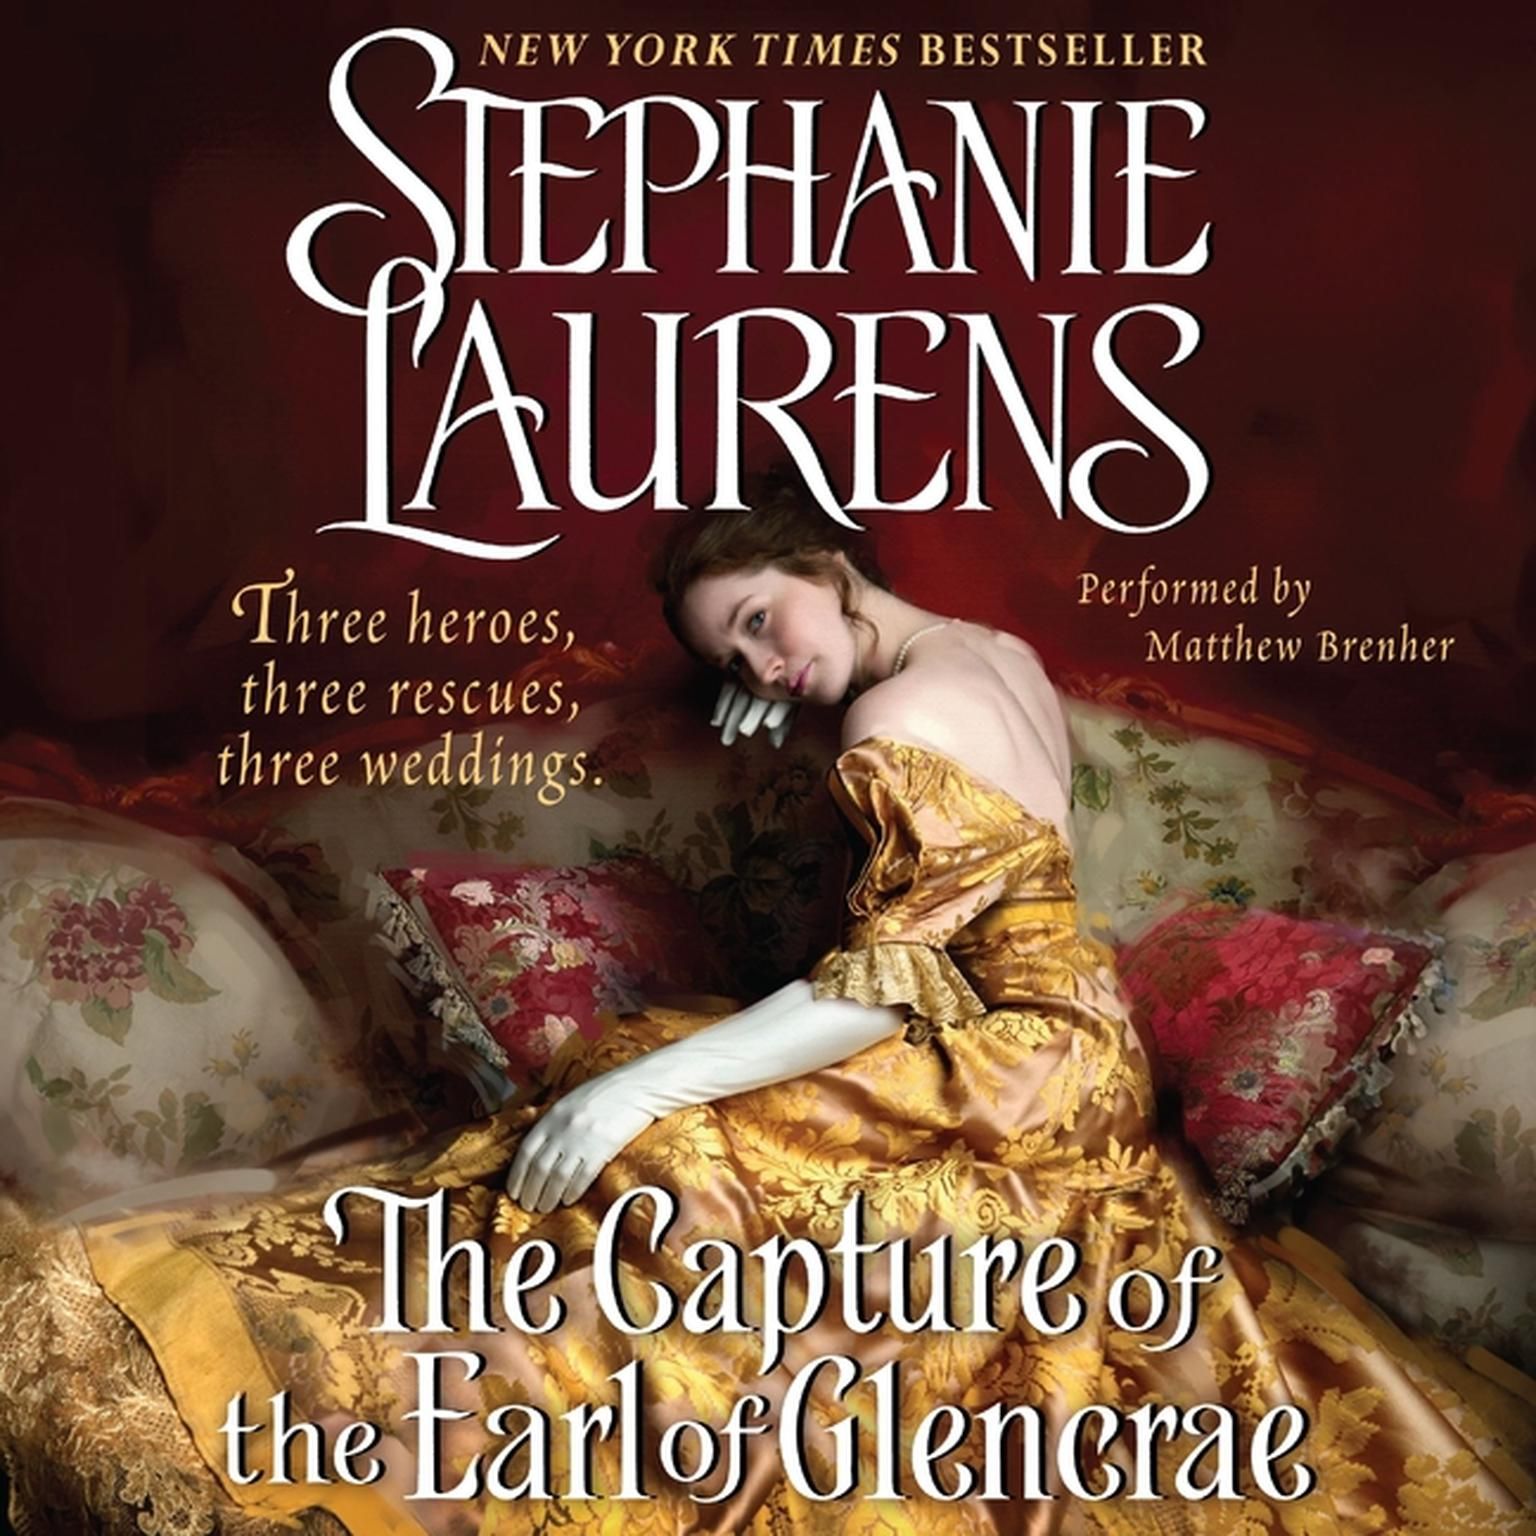 Printable The Capture of the Earl of Glencrae Audiobook Cover Art